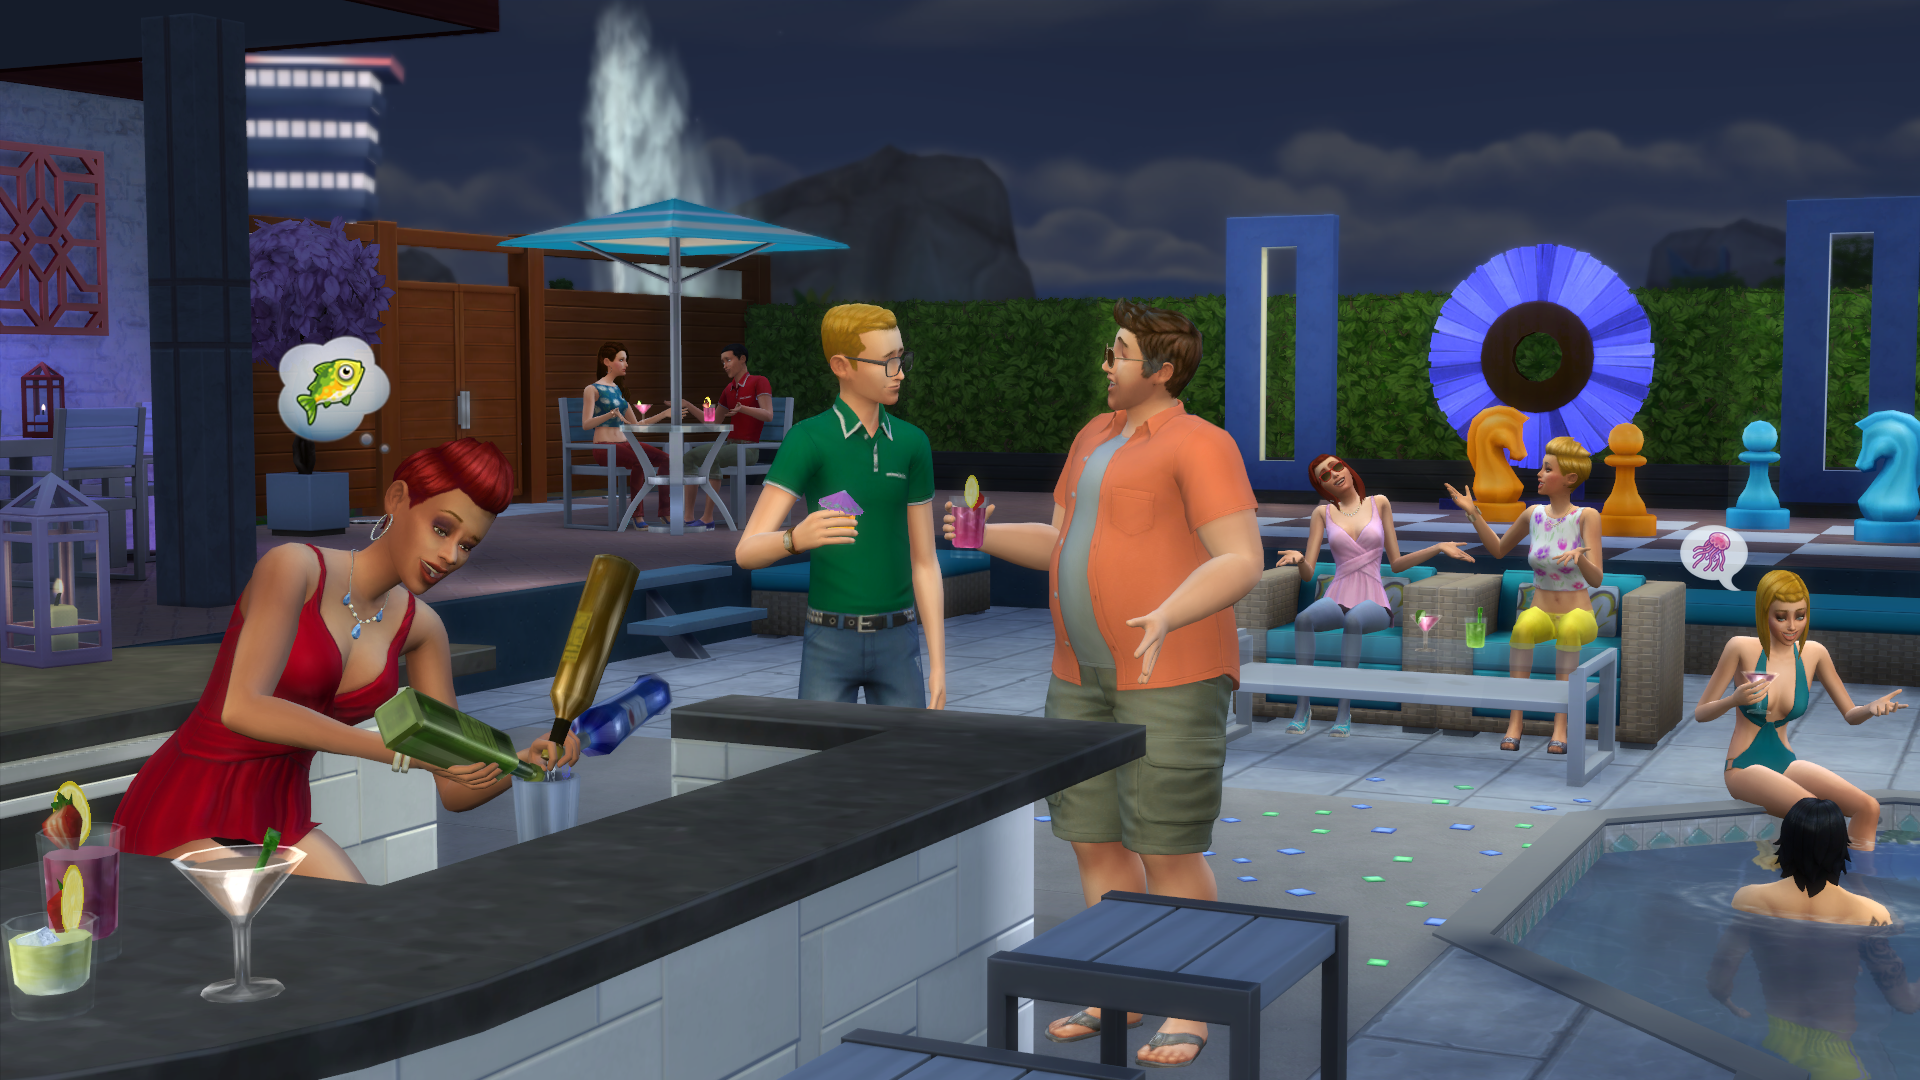 sims 3 psp rom download